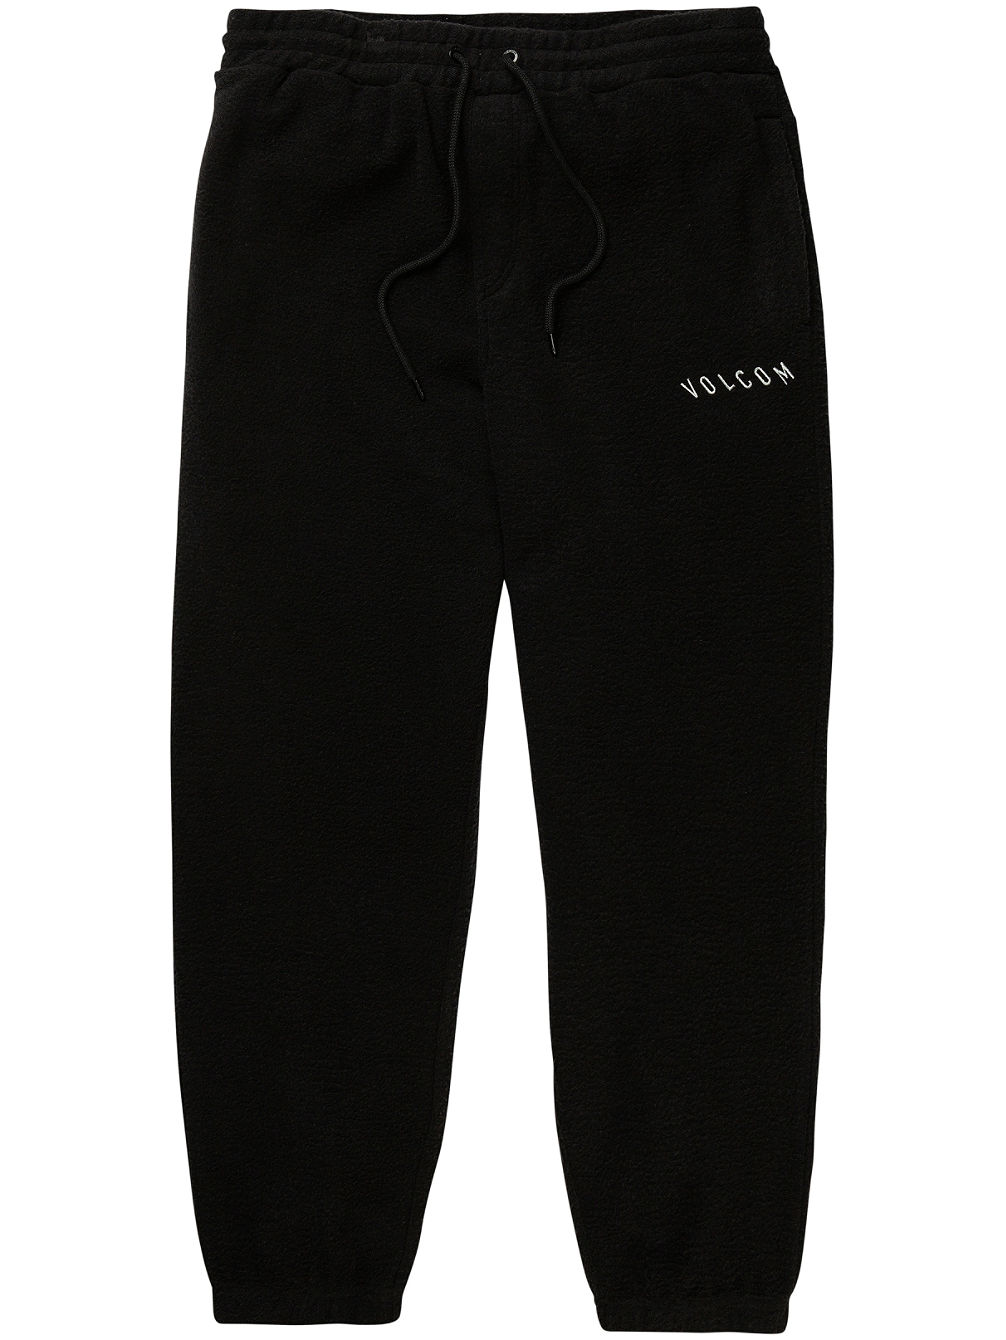 Hever Jogging Pants